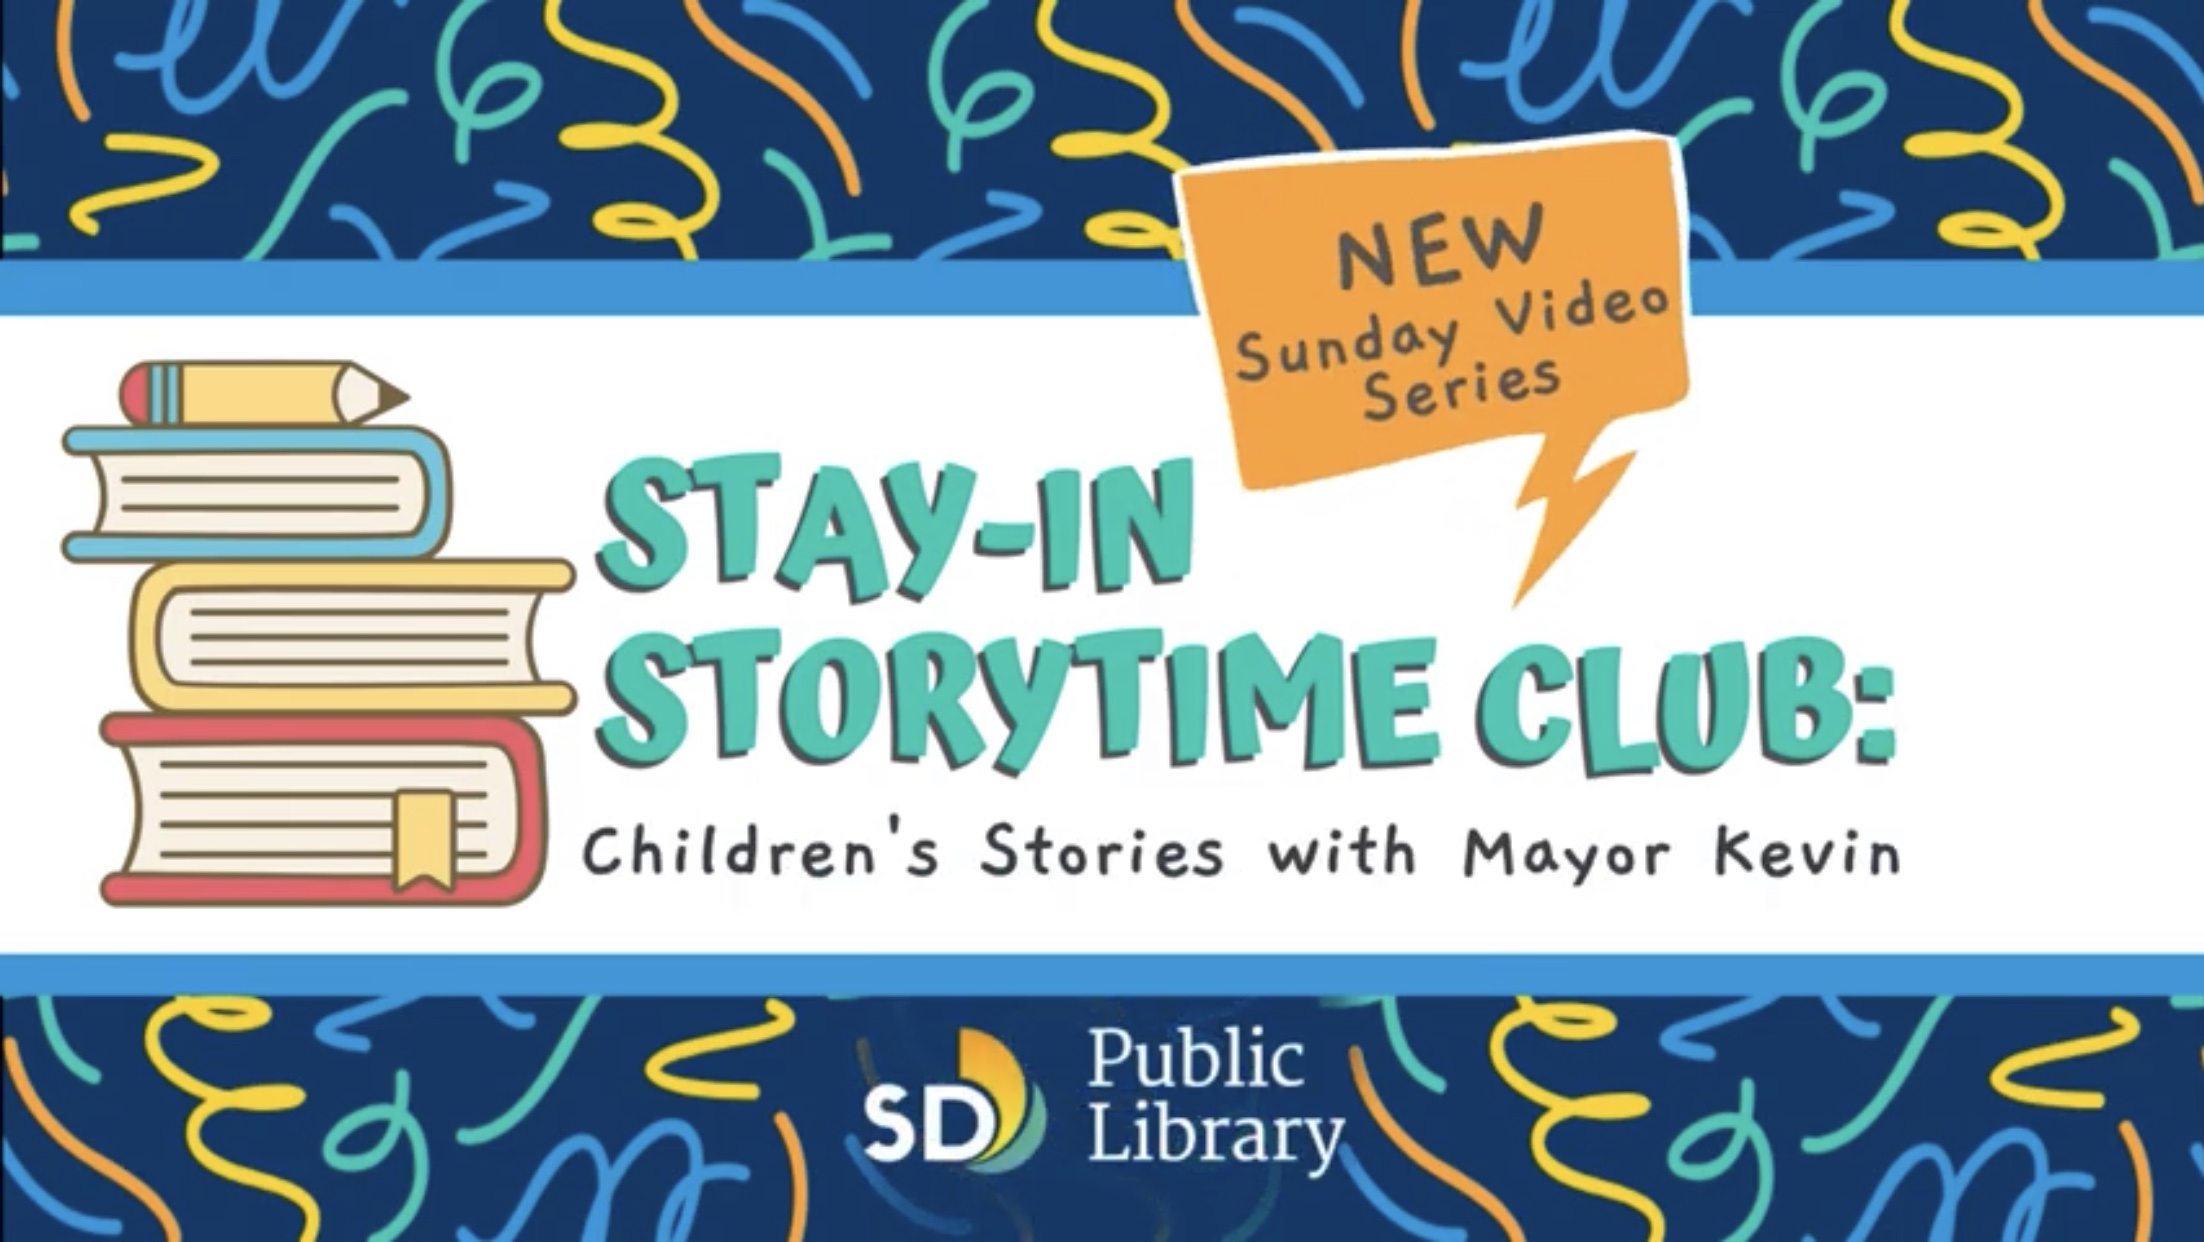 Mayor Kevin Stay-in storytime club